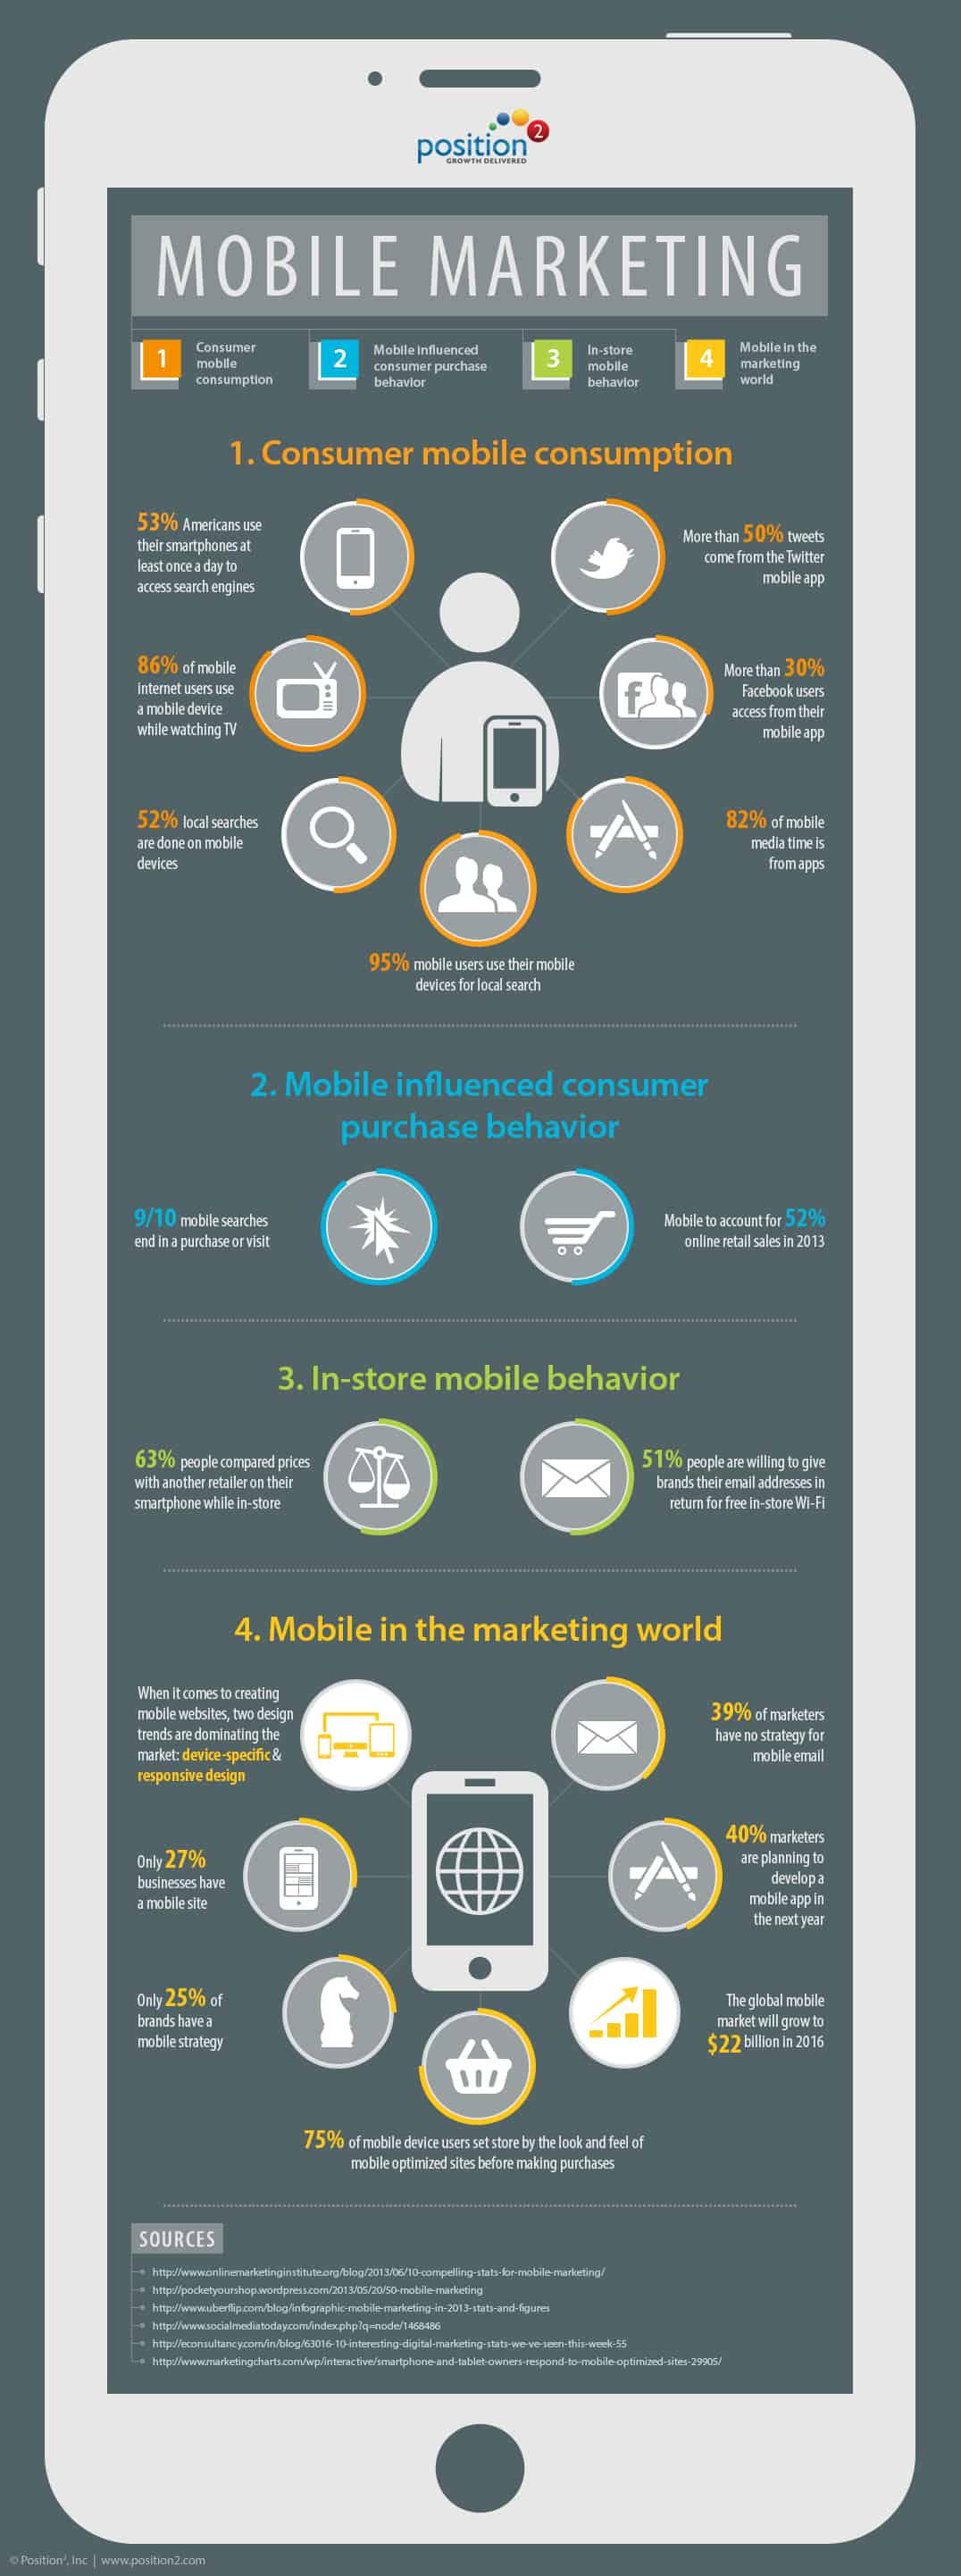 Mobile Stands Tall in the Mrketing World